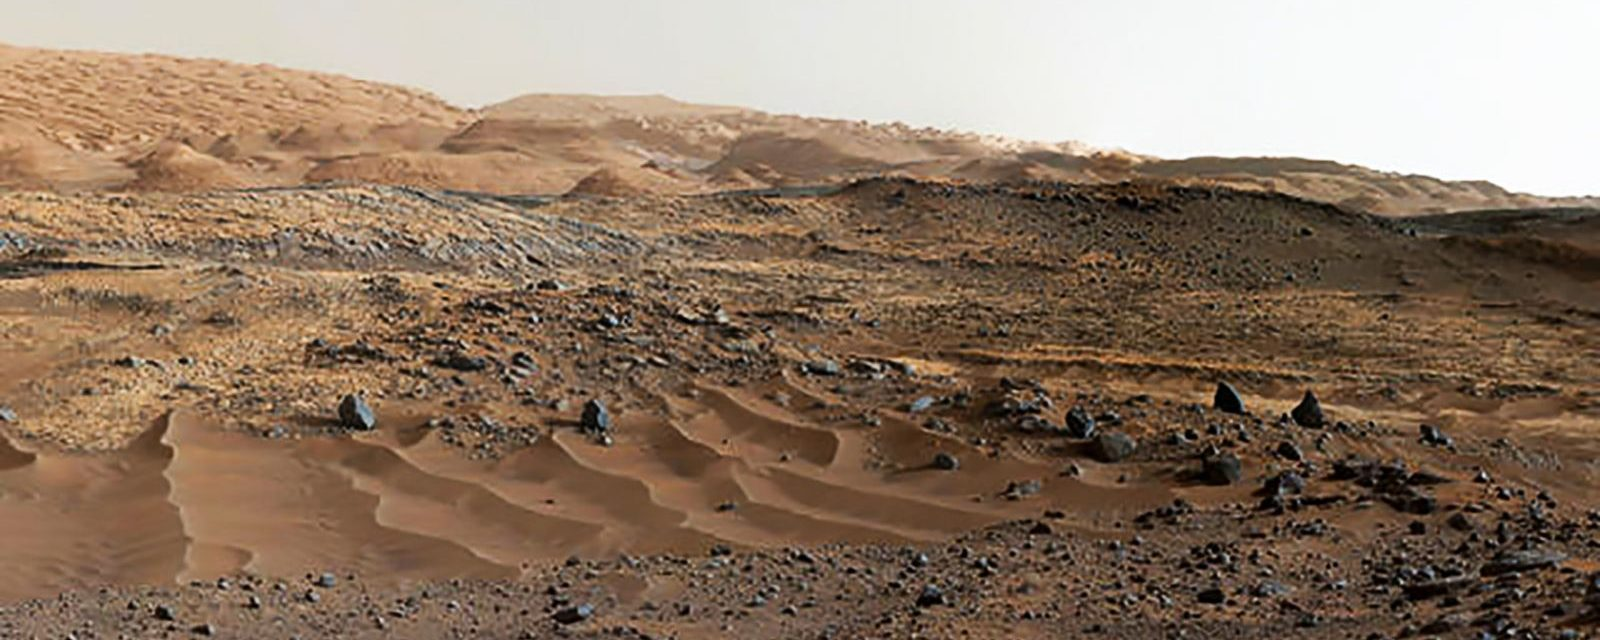 Martian dust: Martian geology as viewed by Curiosity rover